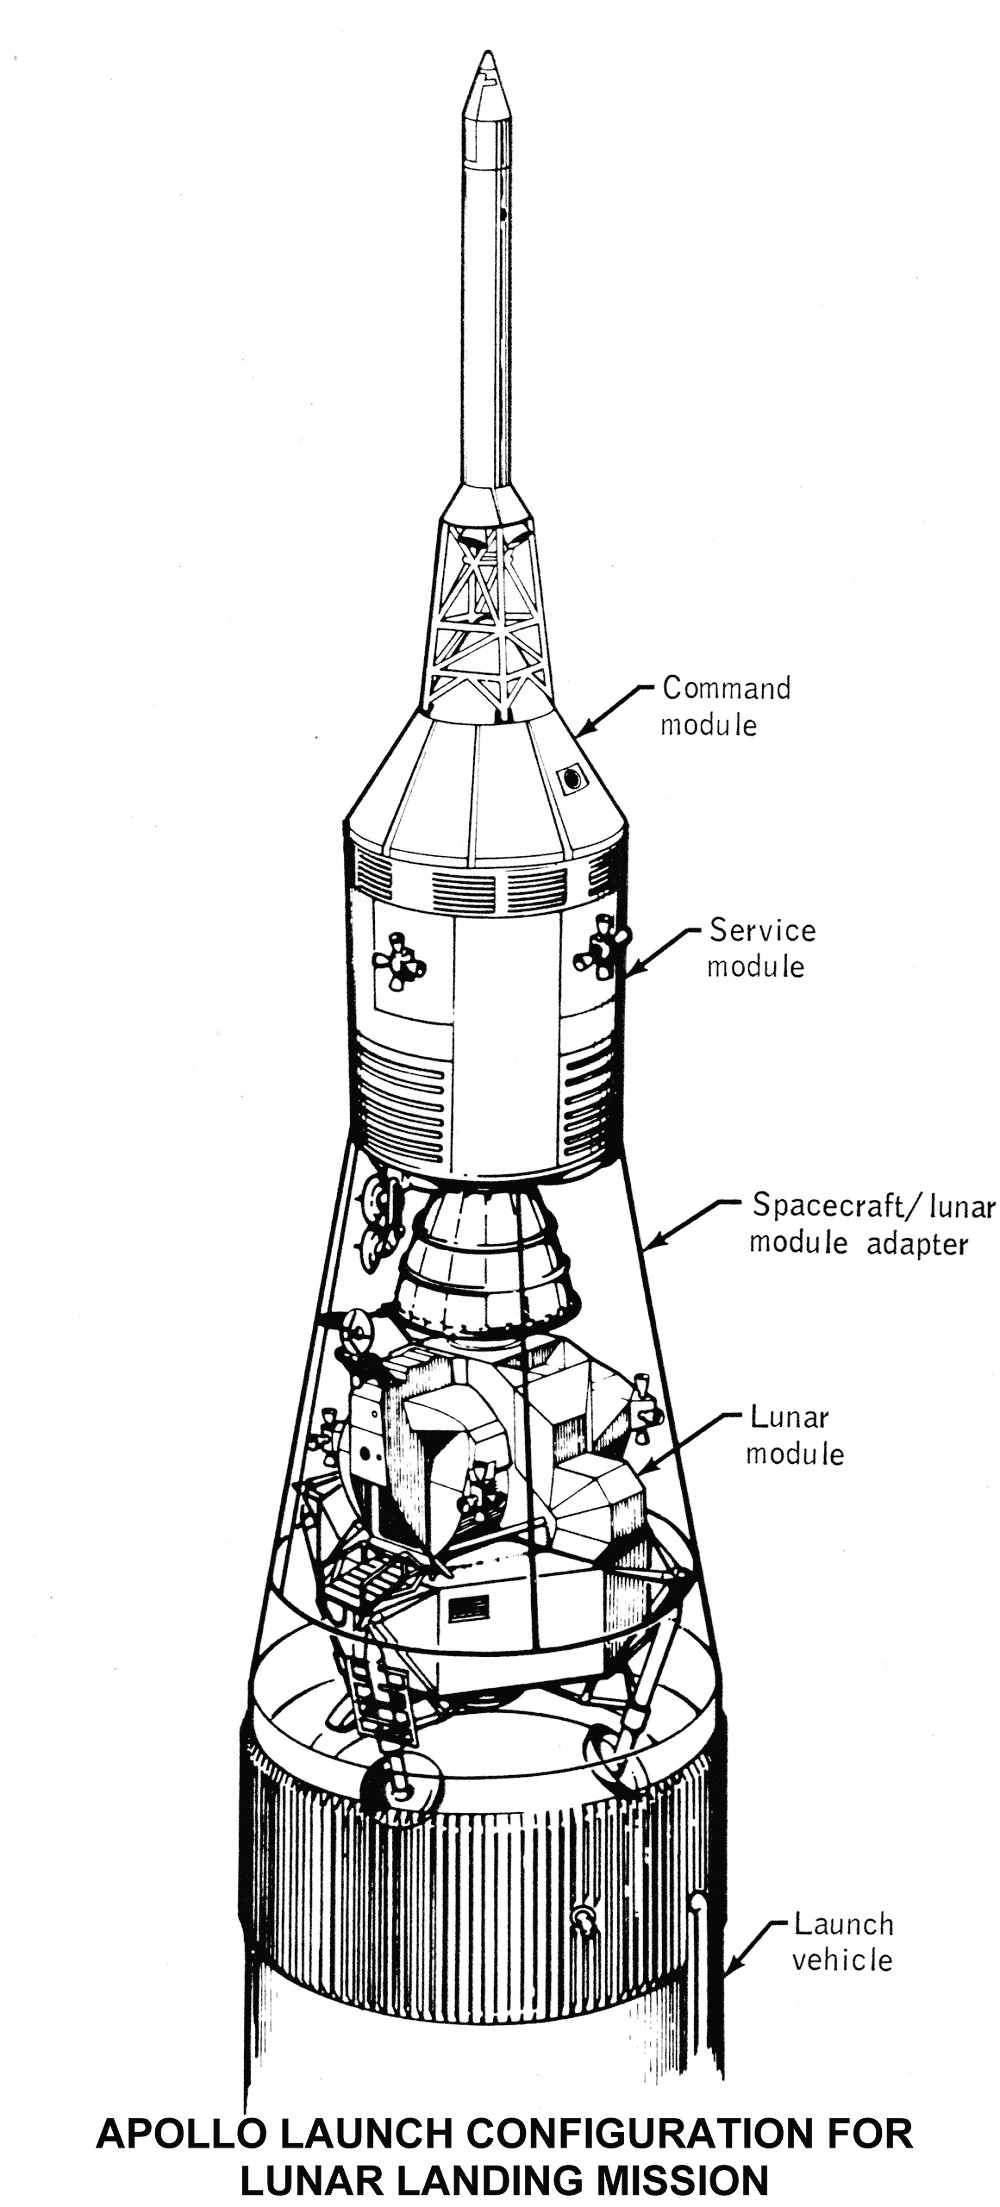 Apollo Launch Configuration For Lunar Landing Mission Spaceship Structure Diagram